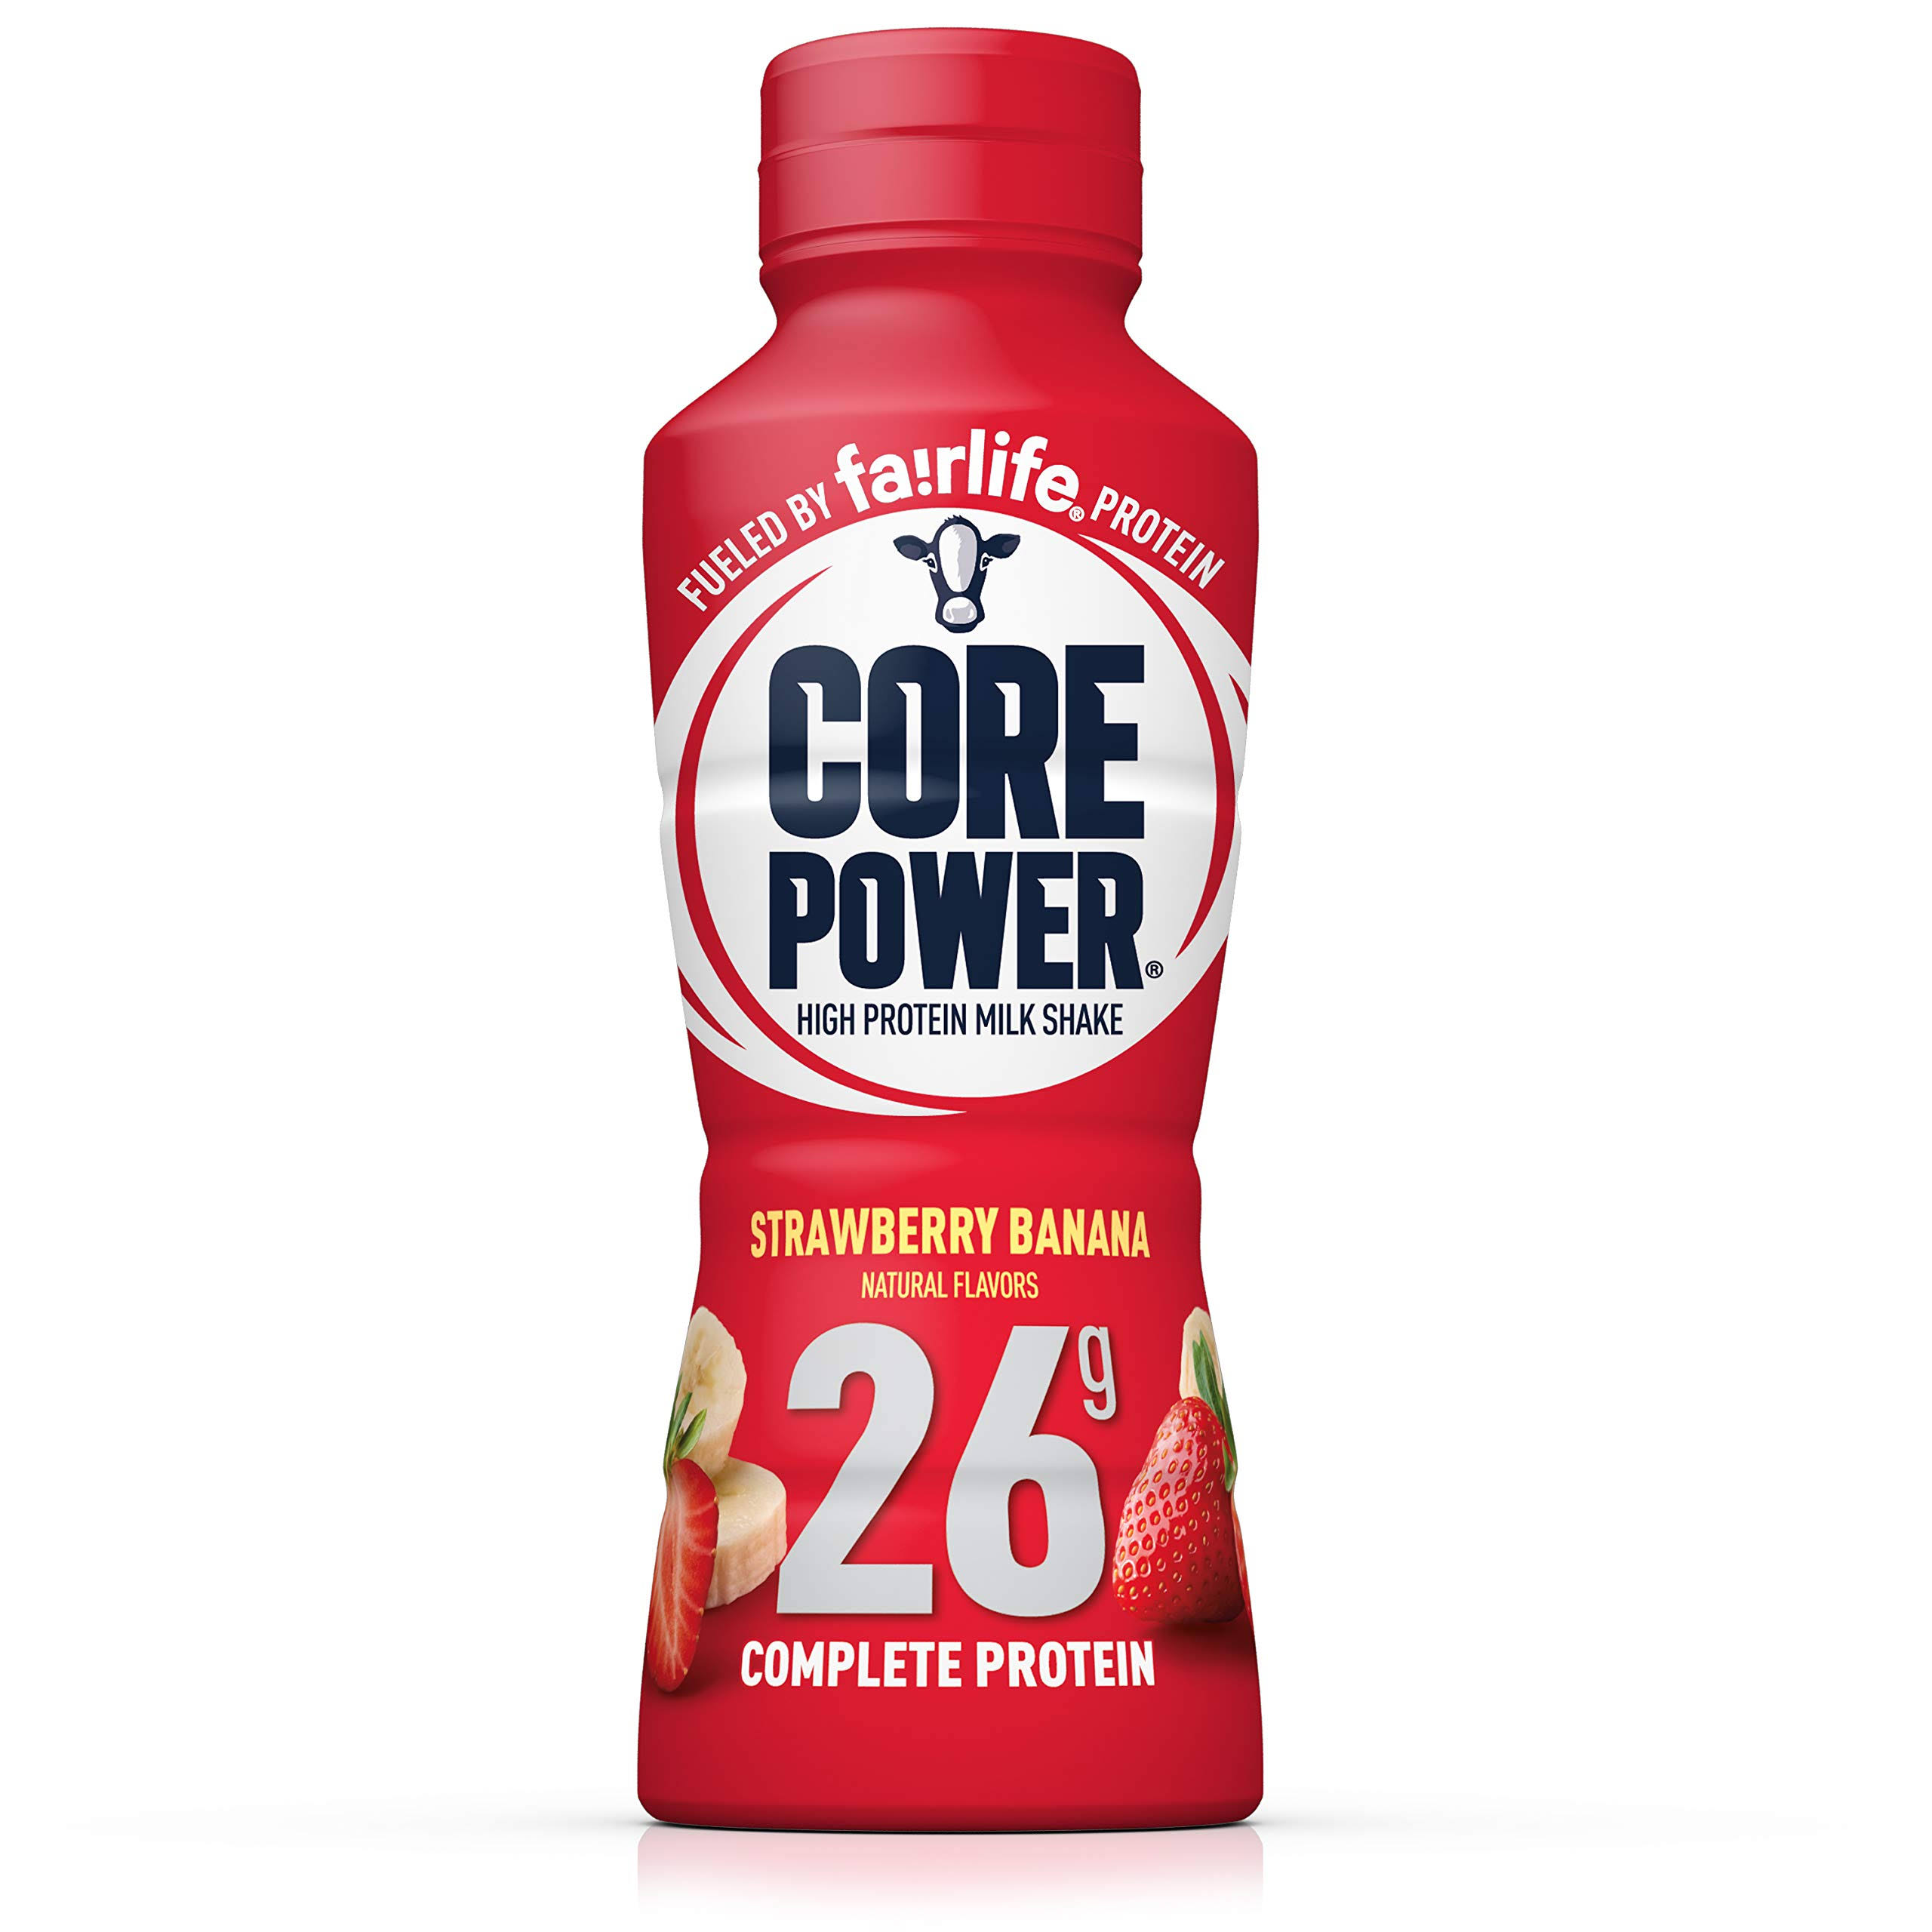 Core Power Complete Protein Milk Shake Strawberry Banana, 14.0 fl oz